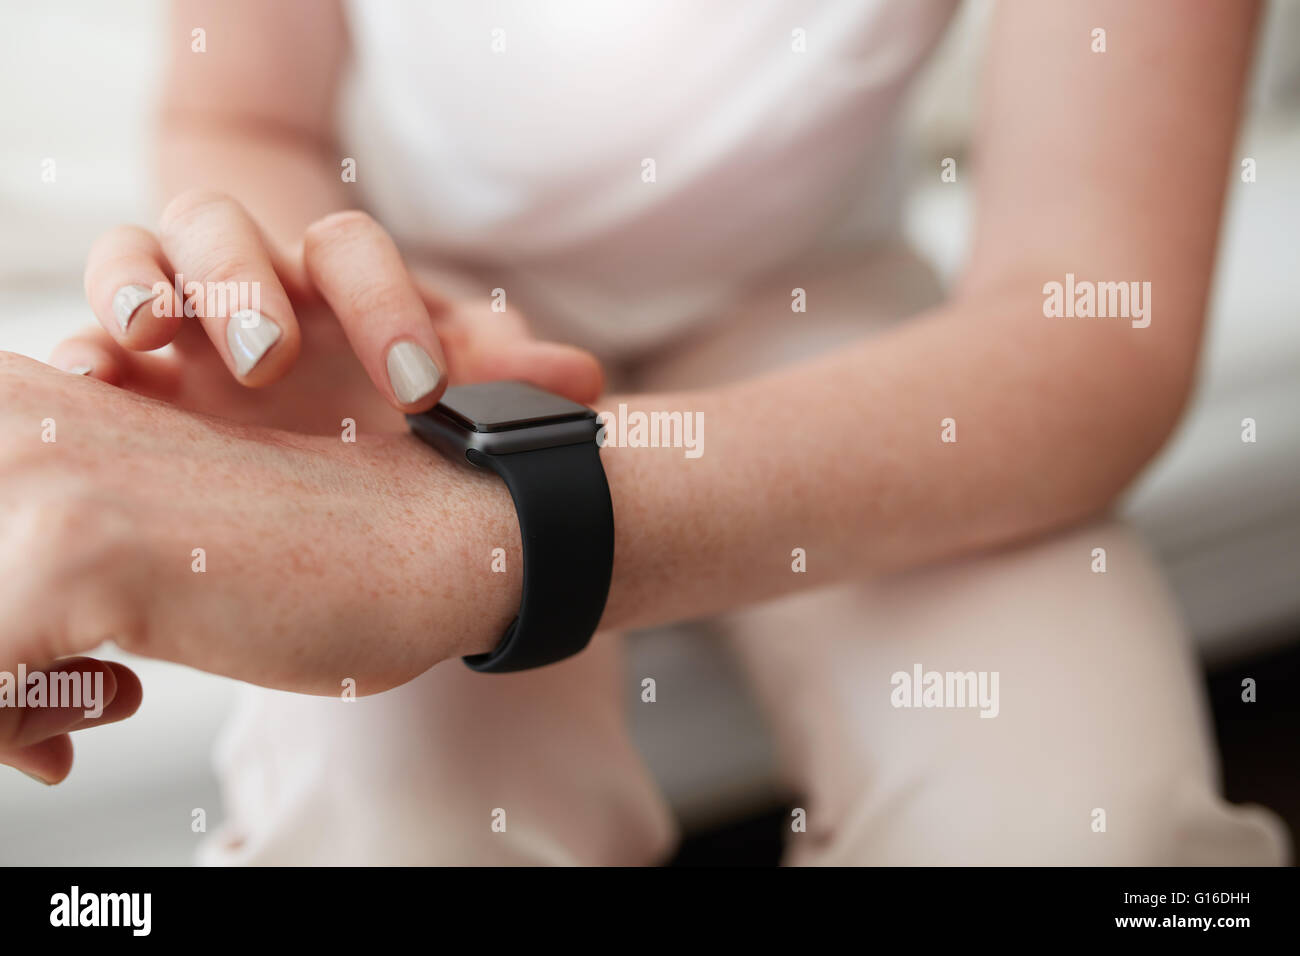 Closeup shot of caucasian female checking time on her smart watch. Focus on wrist watch and hands. - Stock Image